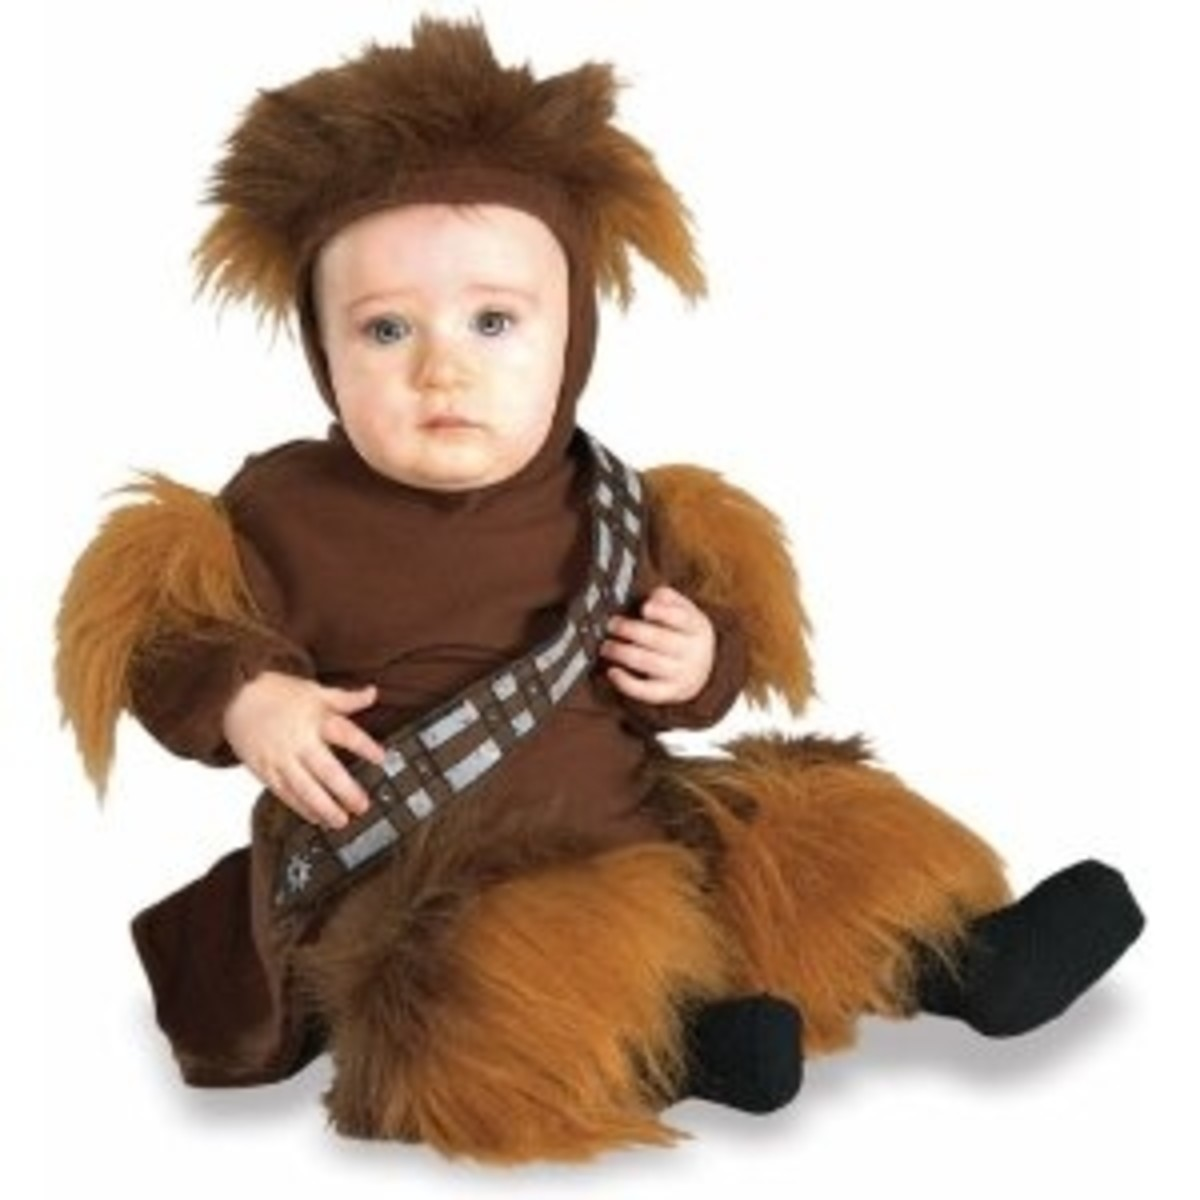 Baby Boy Chewbacca Star Wars Costume (6-12 Months)